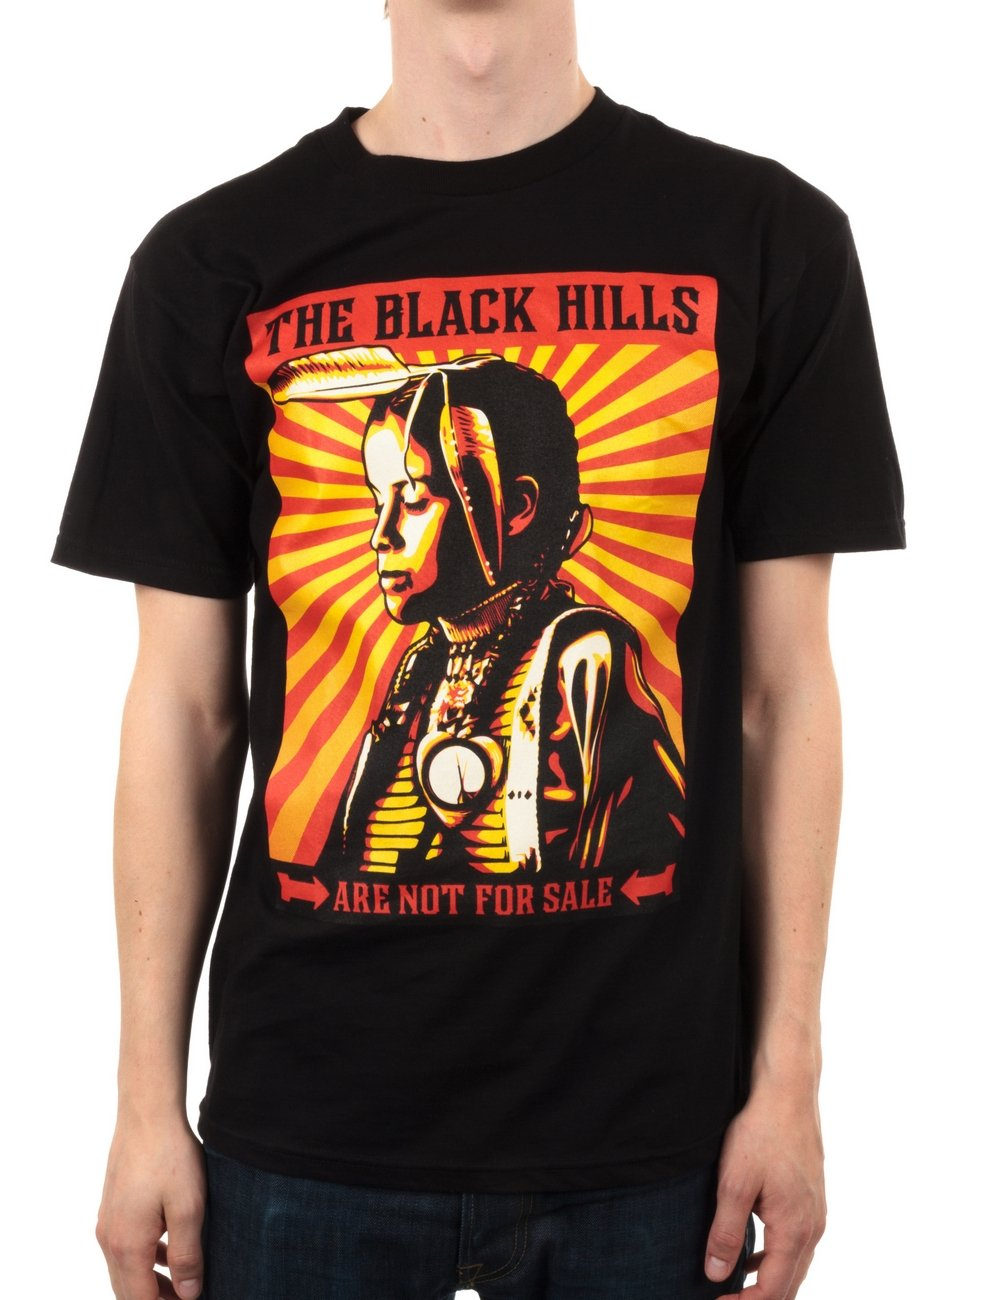 Not Clothing But Makeup Is Just As Important To Finish A: Obey Clothing Black Hills Are Not For Sale